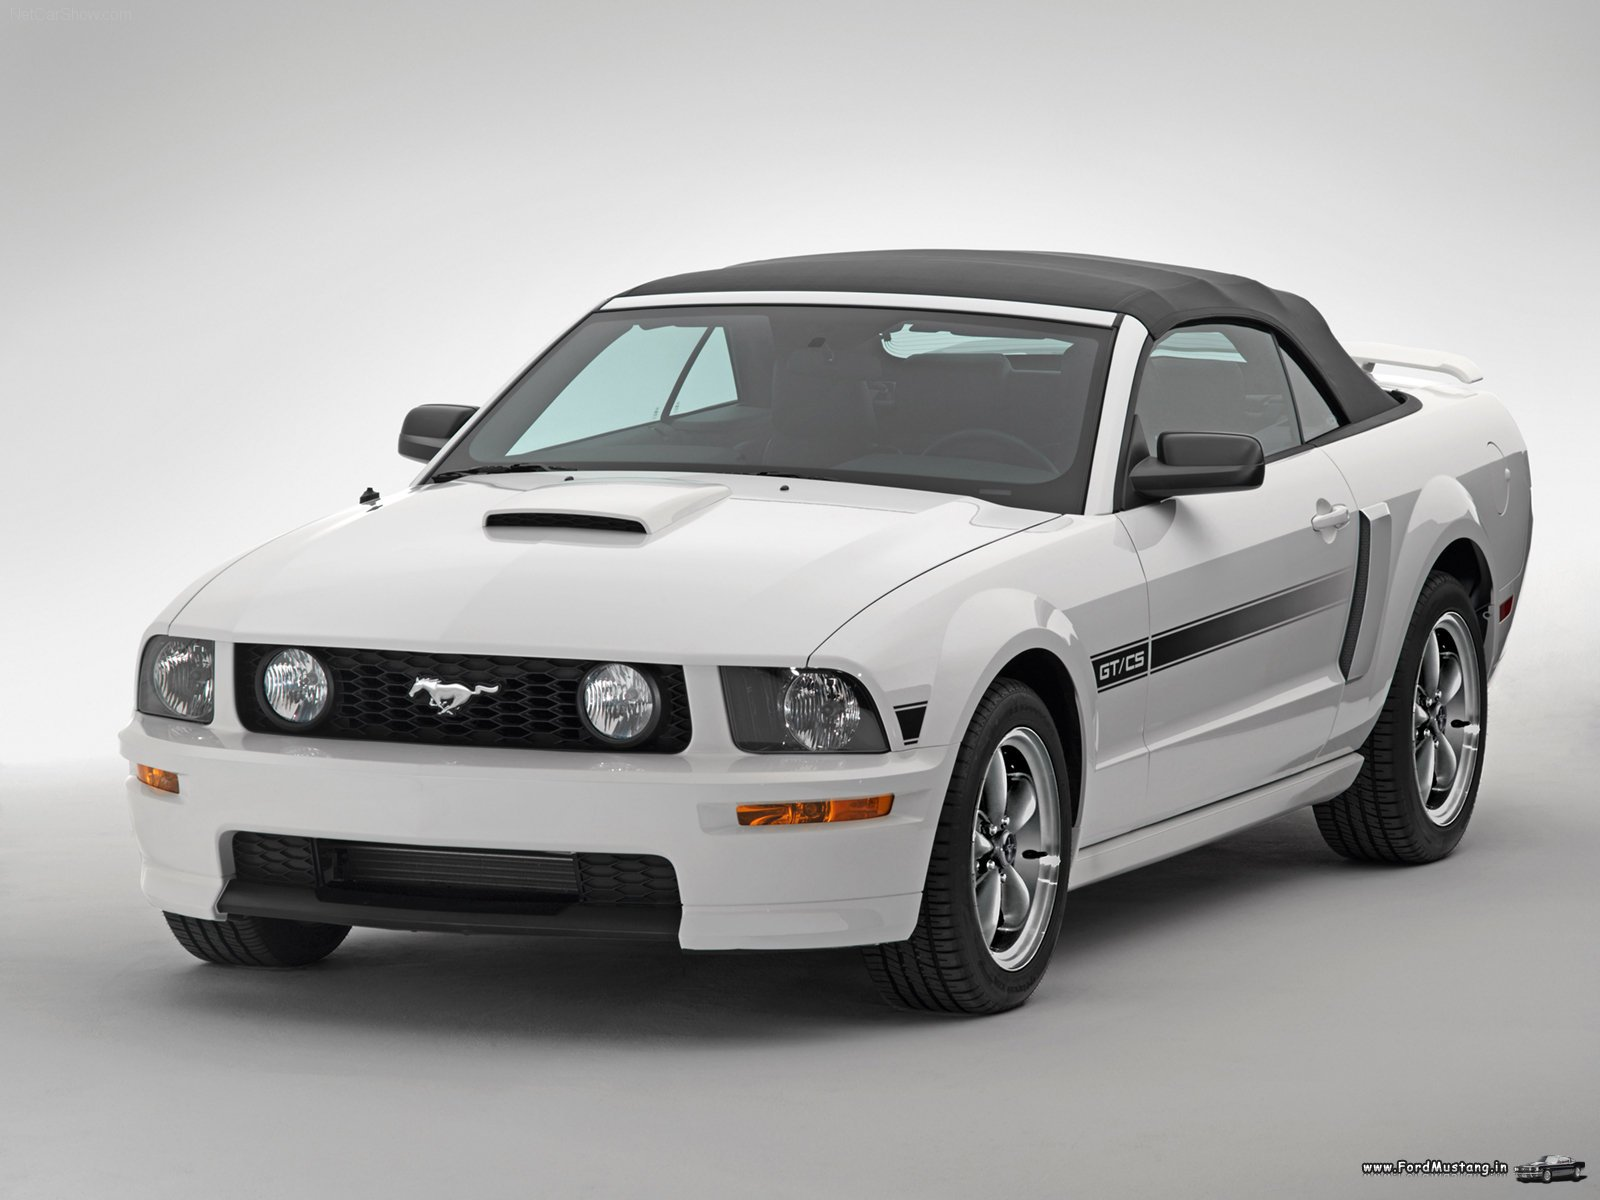 Ford Mustang Gt California Special X Wallpaper